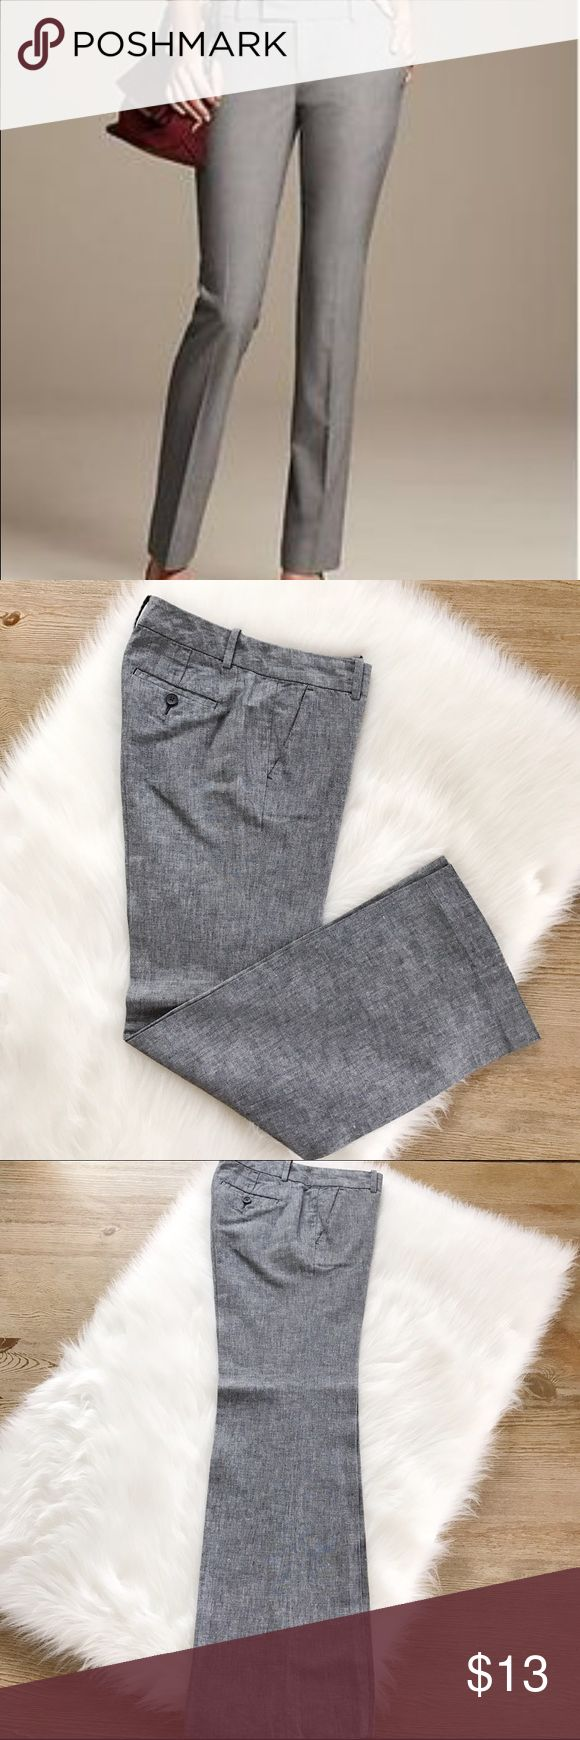 💖SALE💖Banana Republic Dress Pants Gorgeous pants, size 00 PETITE, washed & steamed, no flaws, thin material.                            💖FINAL PRICE💖                 🍭10% off 2 items or more!🍭                             •NO TRADING                             •smoke free Banana Republic Pants